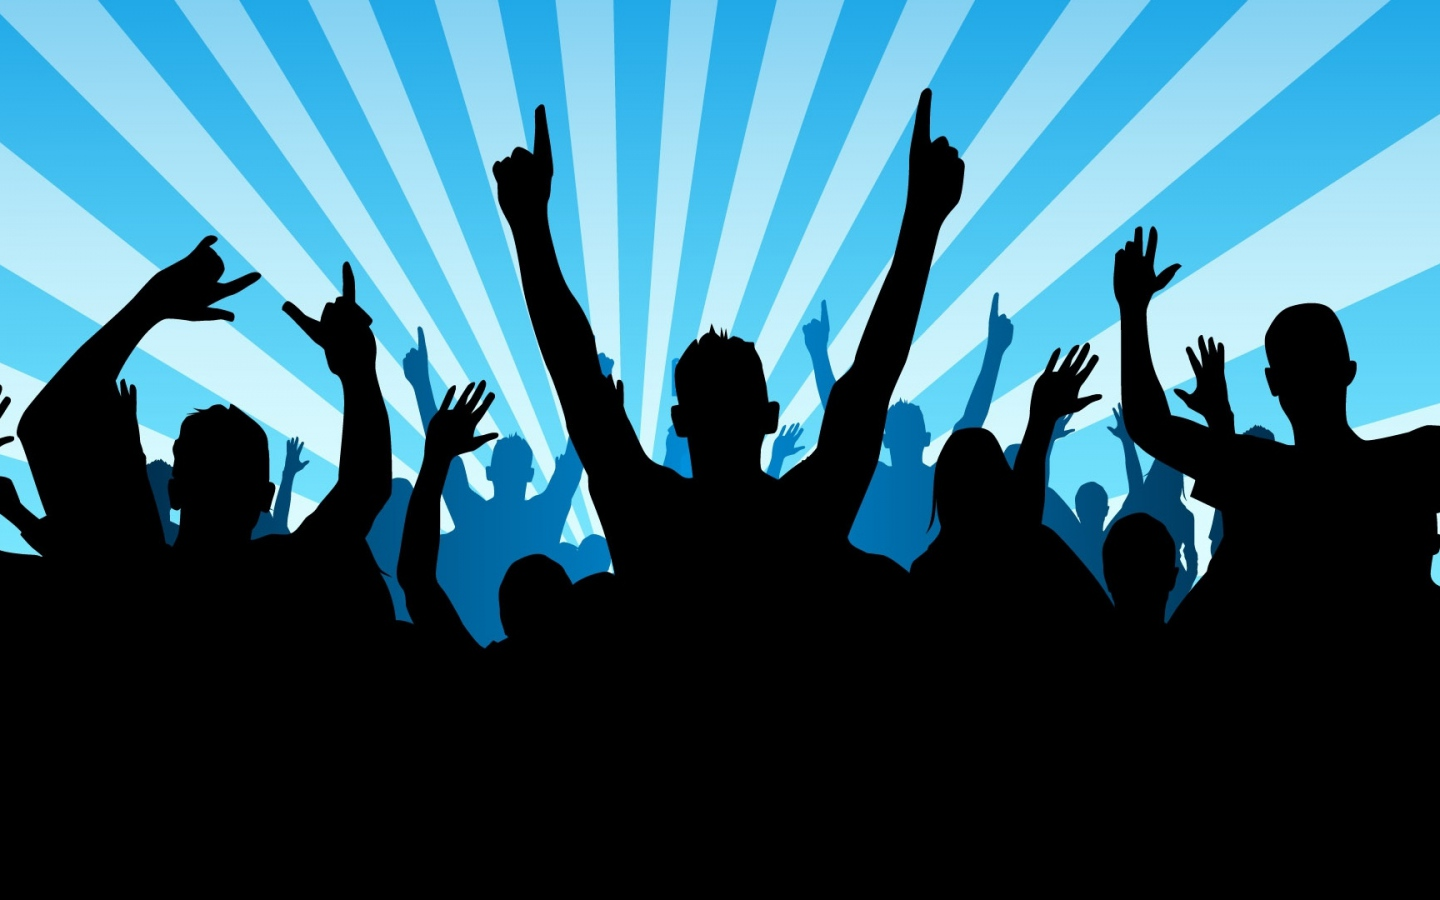 Wallpaper 1440x900 disco club dance hands 1440x900 HD Background 1440x900